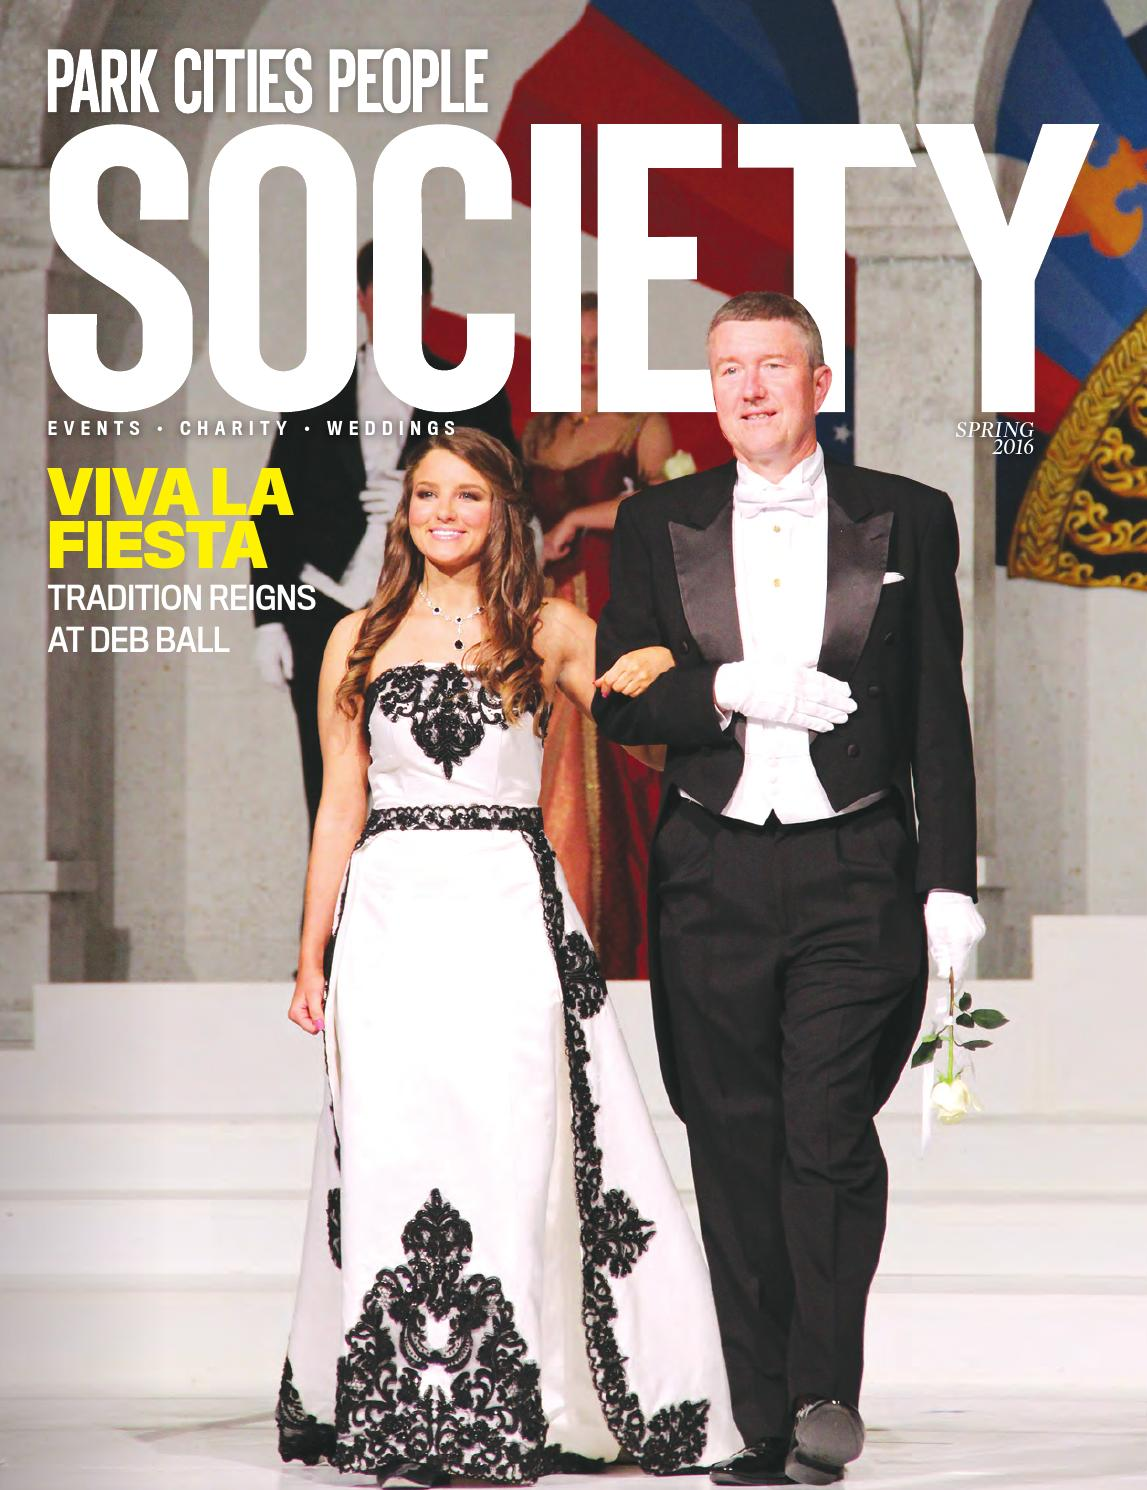 cc29a4342 Society Magazine - Spring 2016 by People Newspapers - issuu